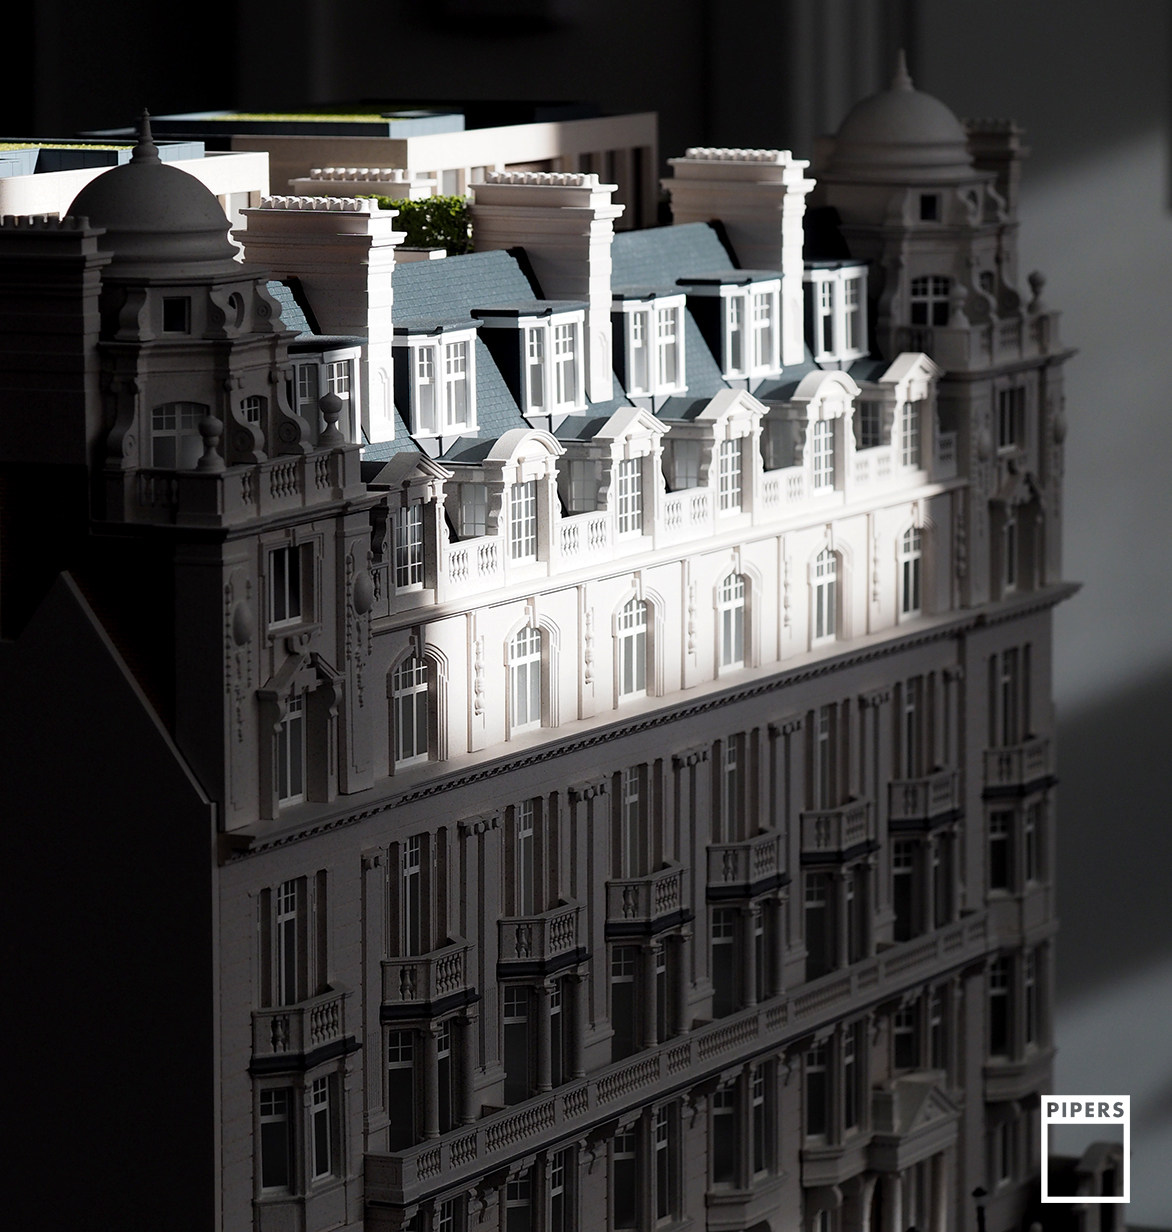 Harcourt House architectural model